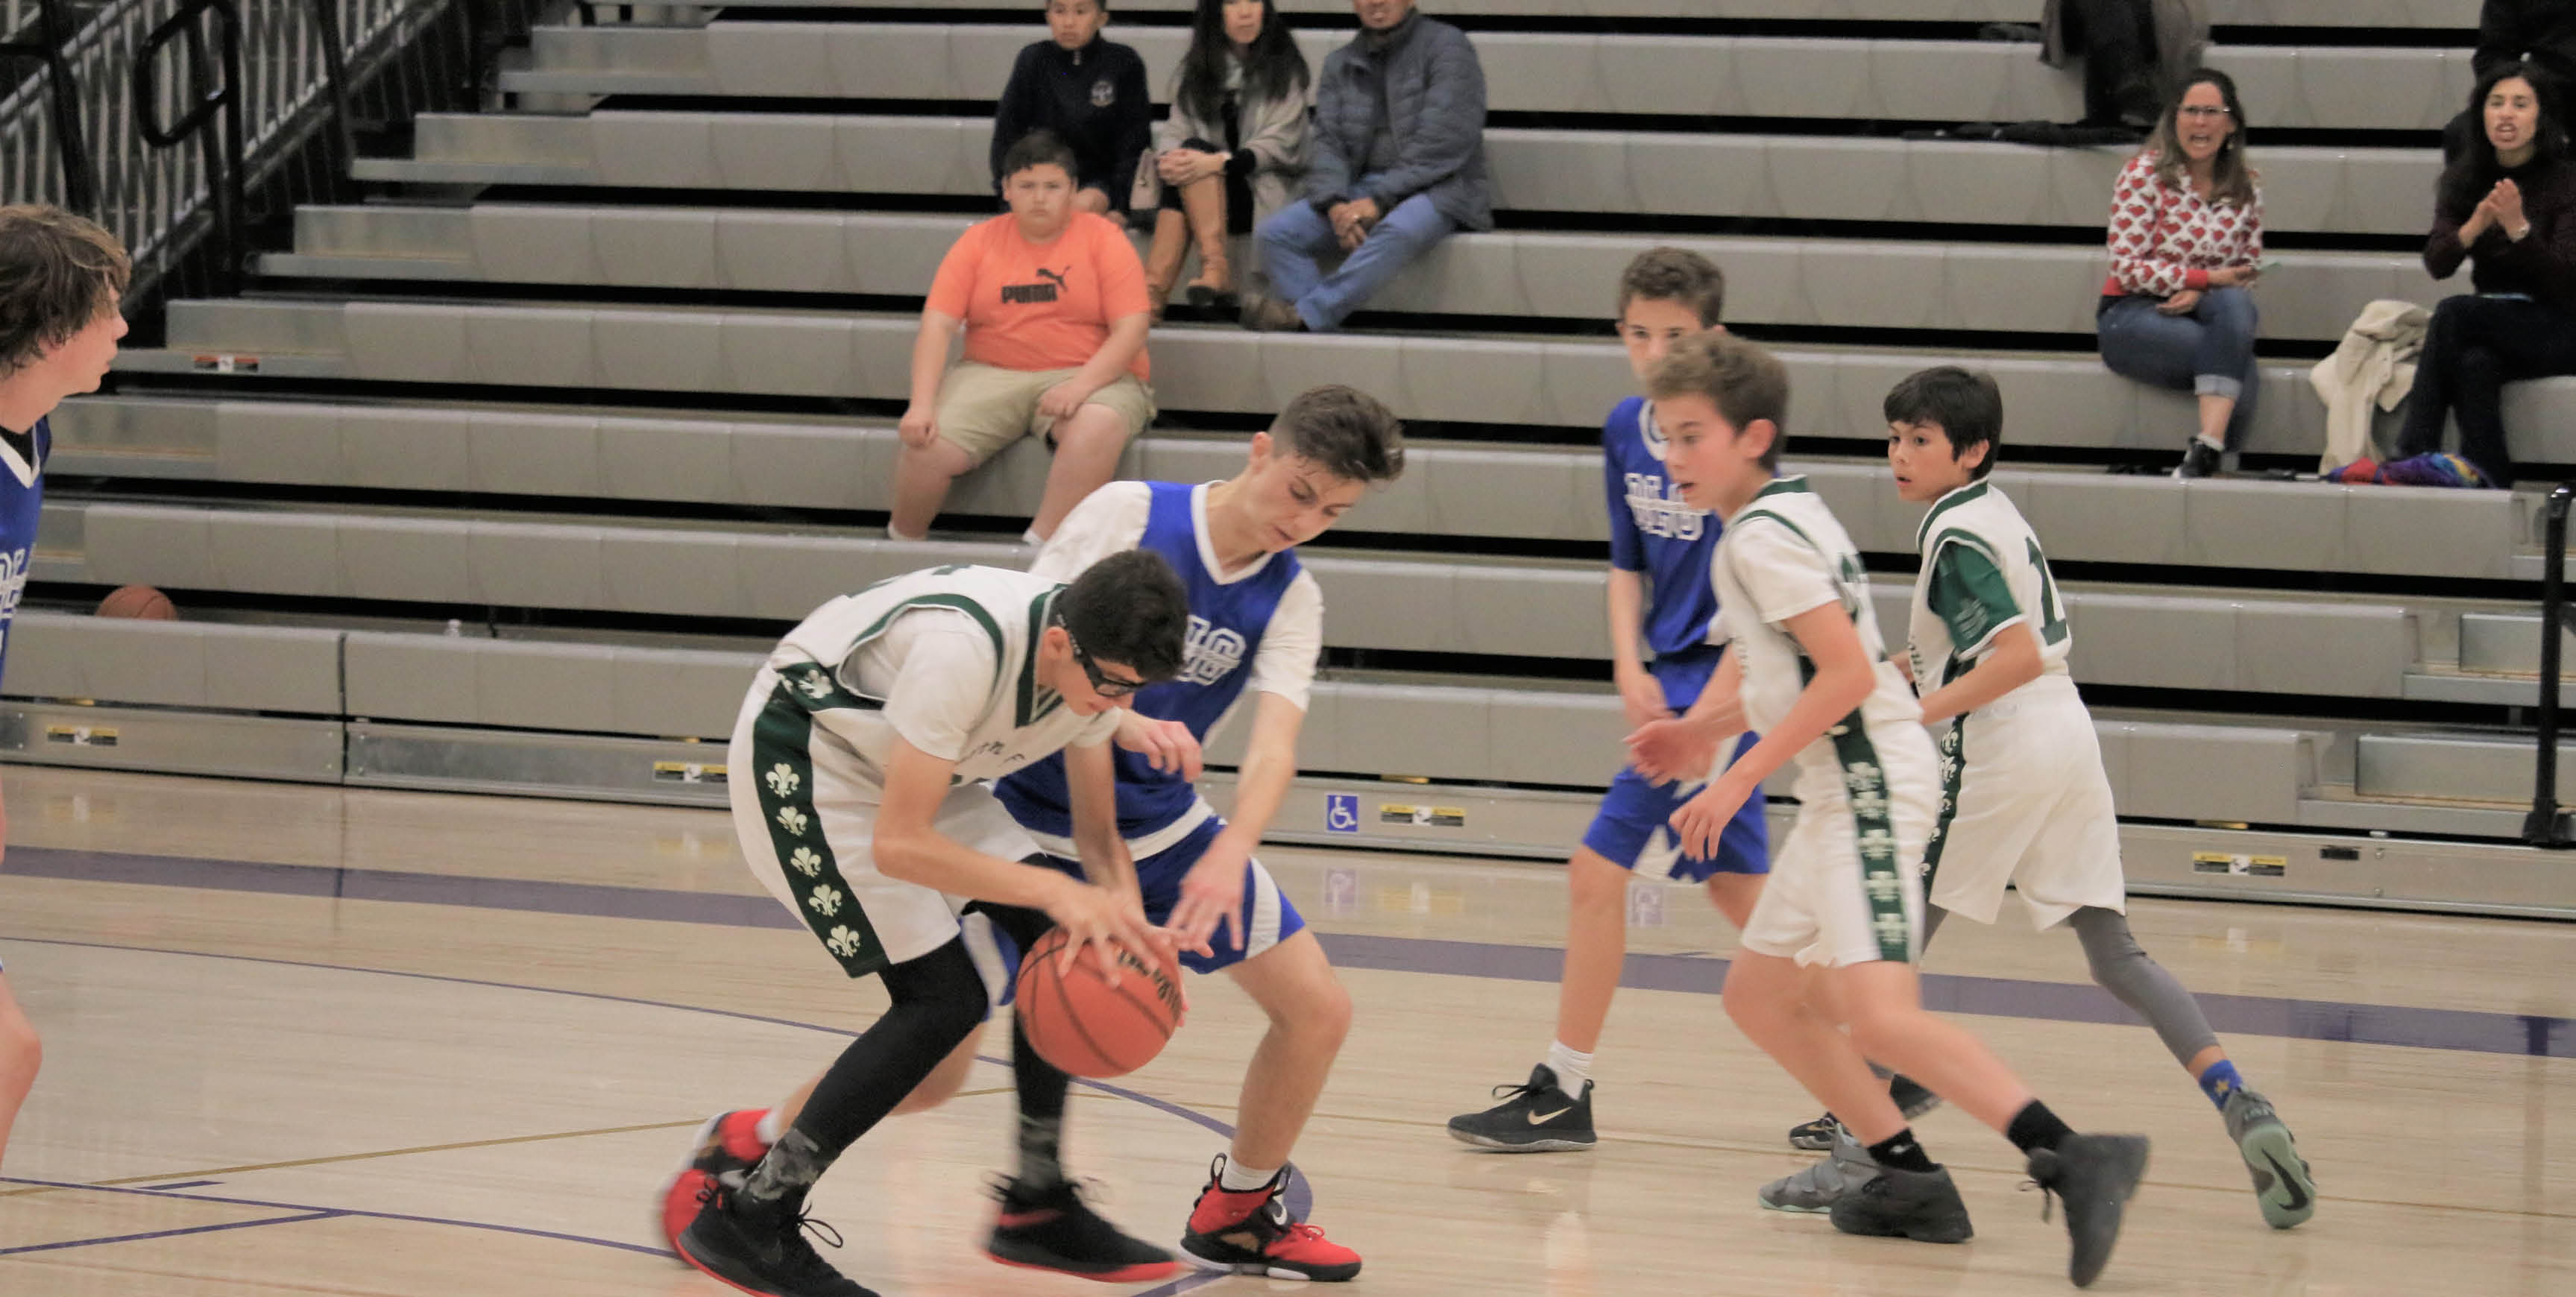 Varsity BB is one of many sports offered at SMA.